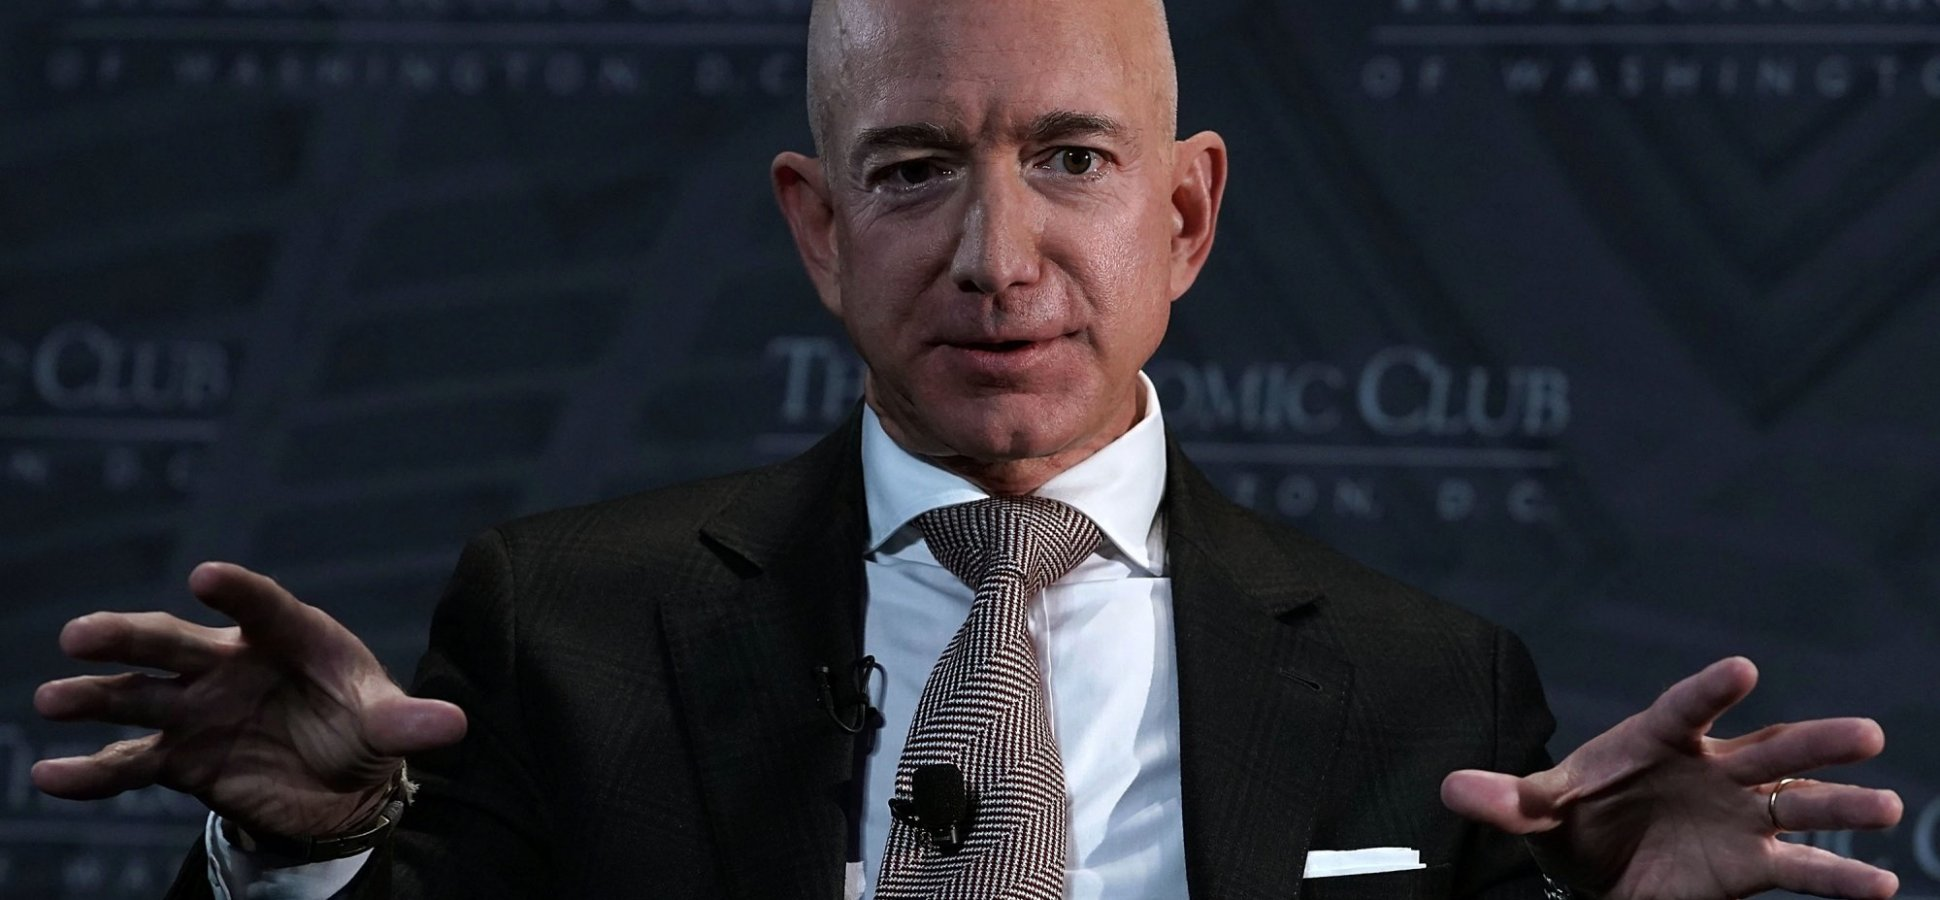 Jeff Bezos's Morning Routine Is the Opposite of Most Productivity Advice. Maybe Yours Should Be Too